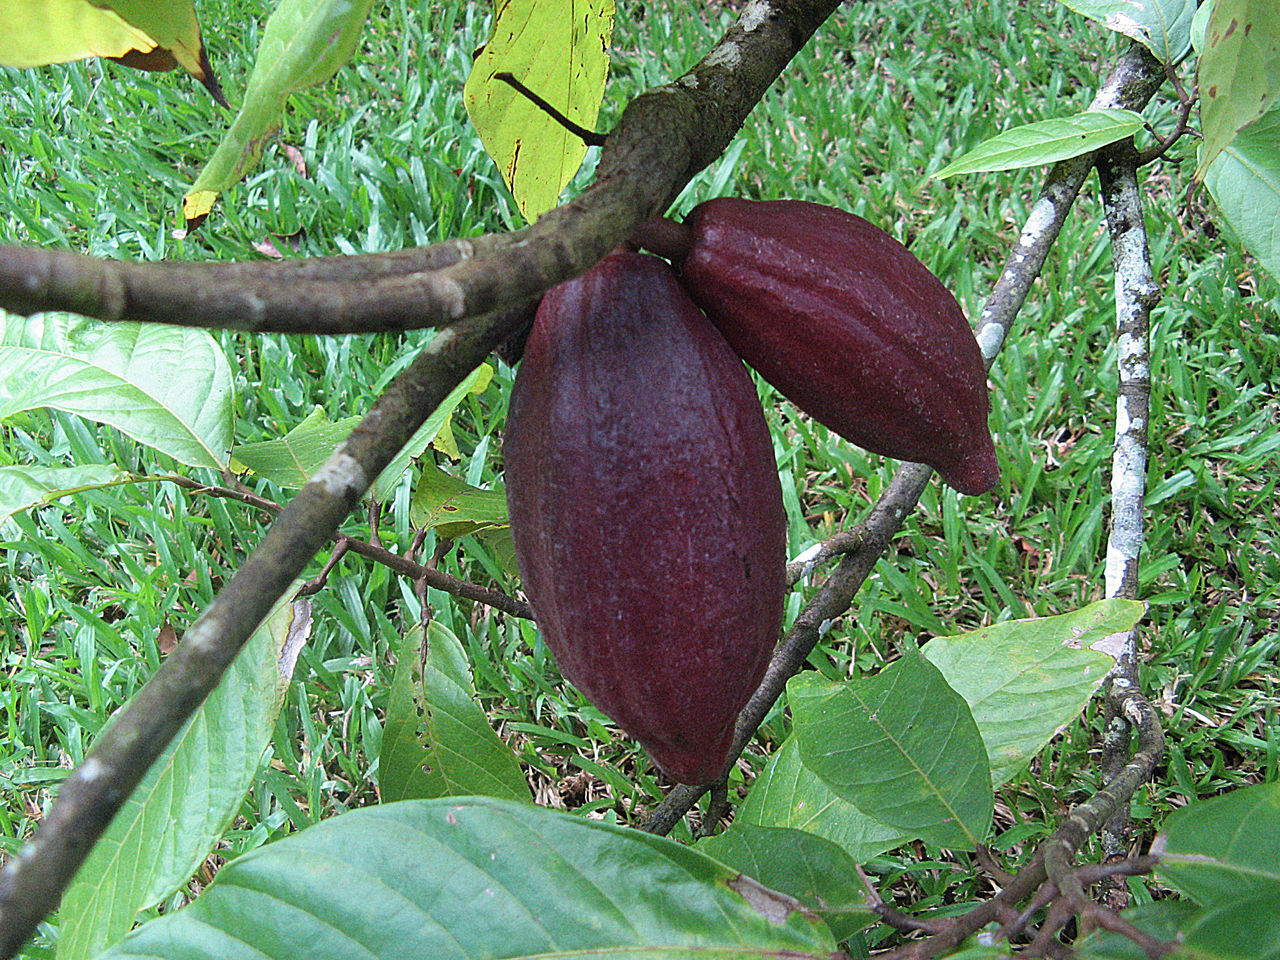 Beauty In Nature Botany Branch Cacao Beans In A Fa Cactus Close-up Day Freshness Green Color Growing Growth Jamaica Large Leaf Nature No People Outdoors Plant Scenics Tranquility Tree Tree Trunk